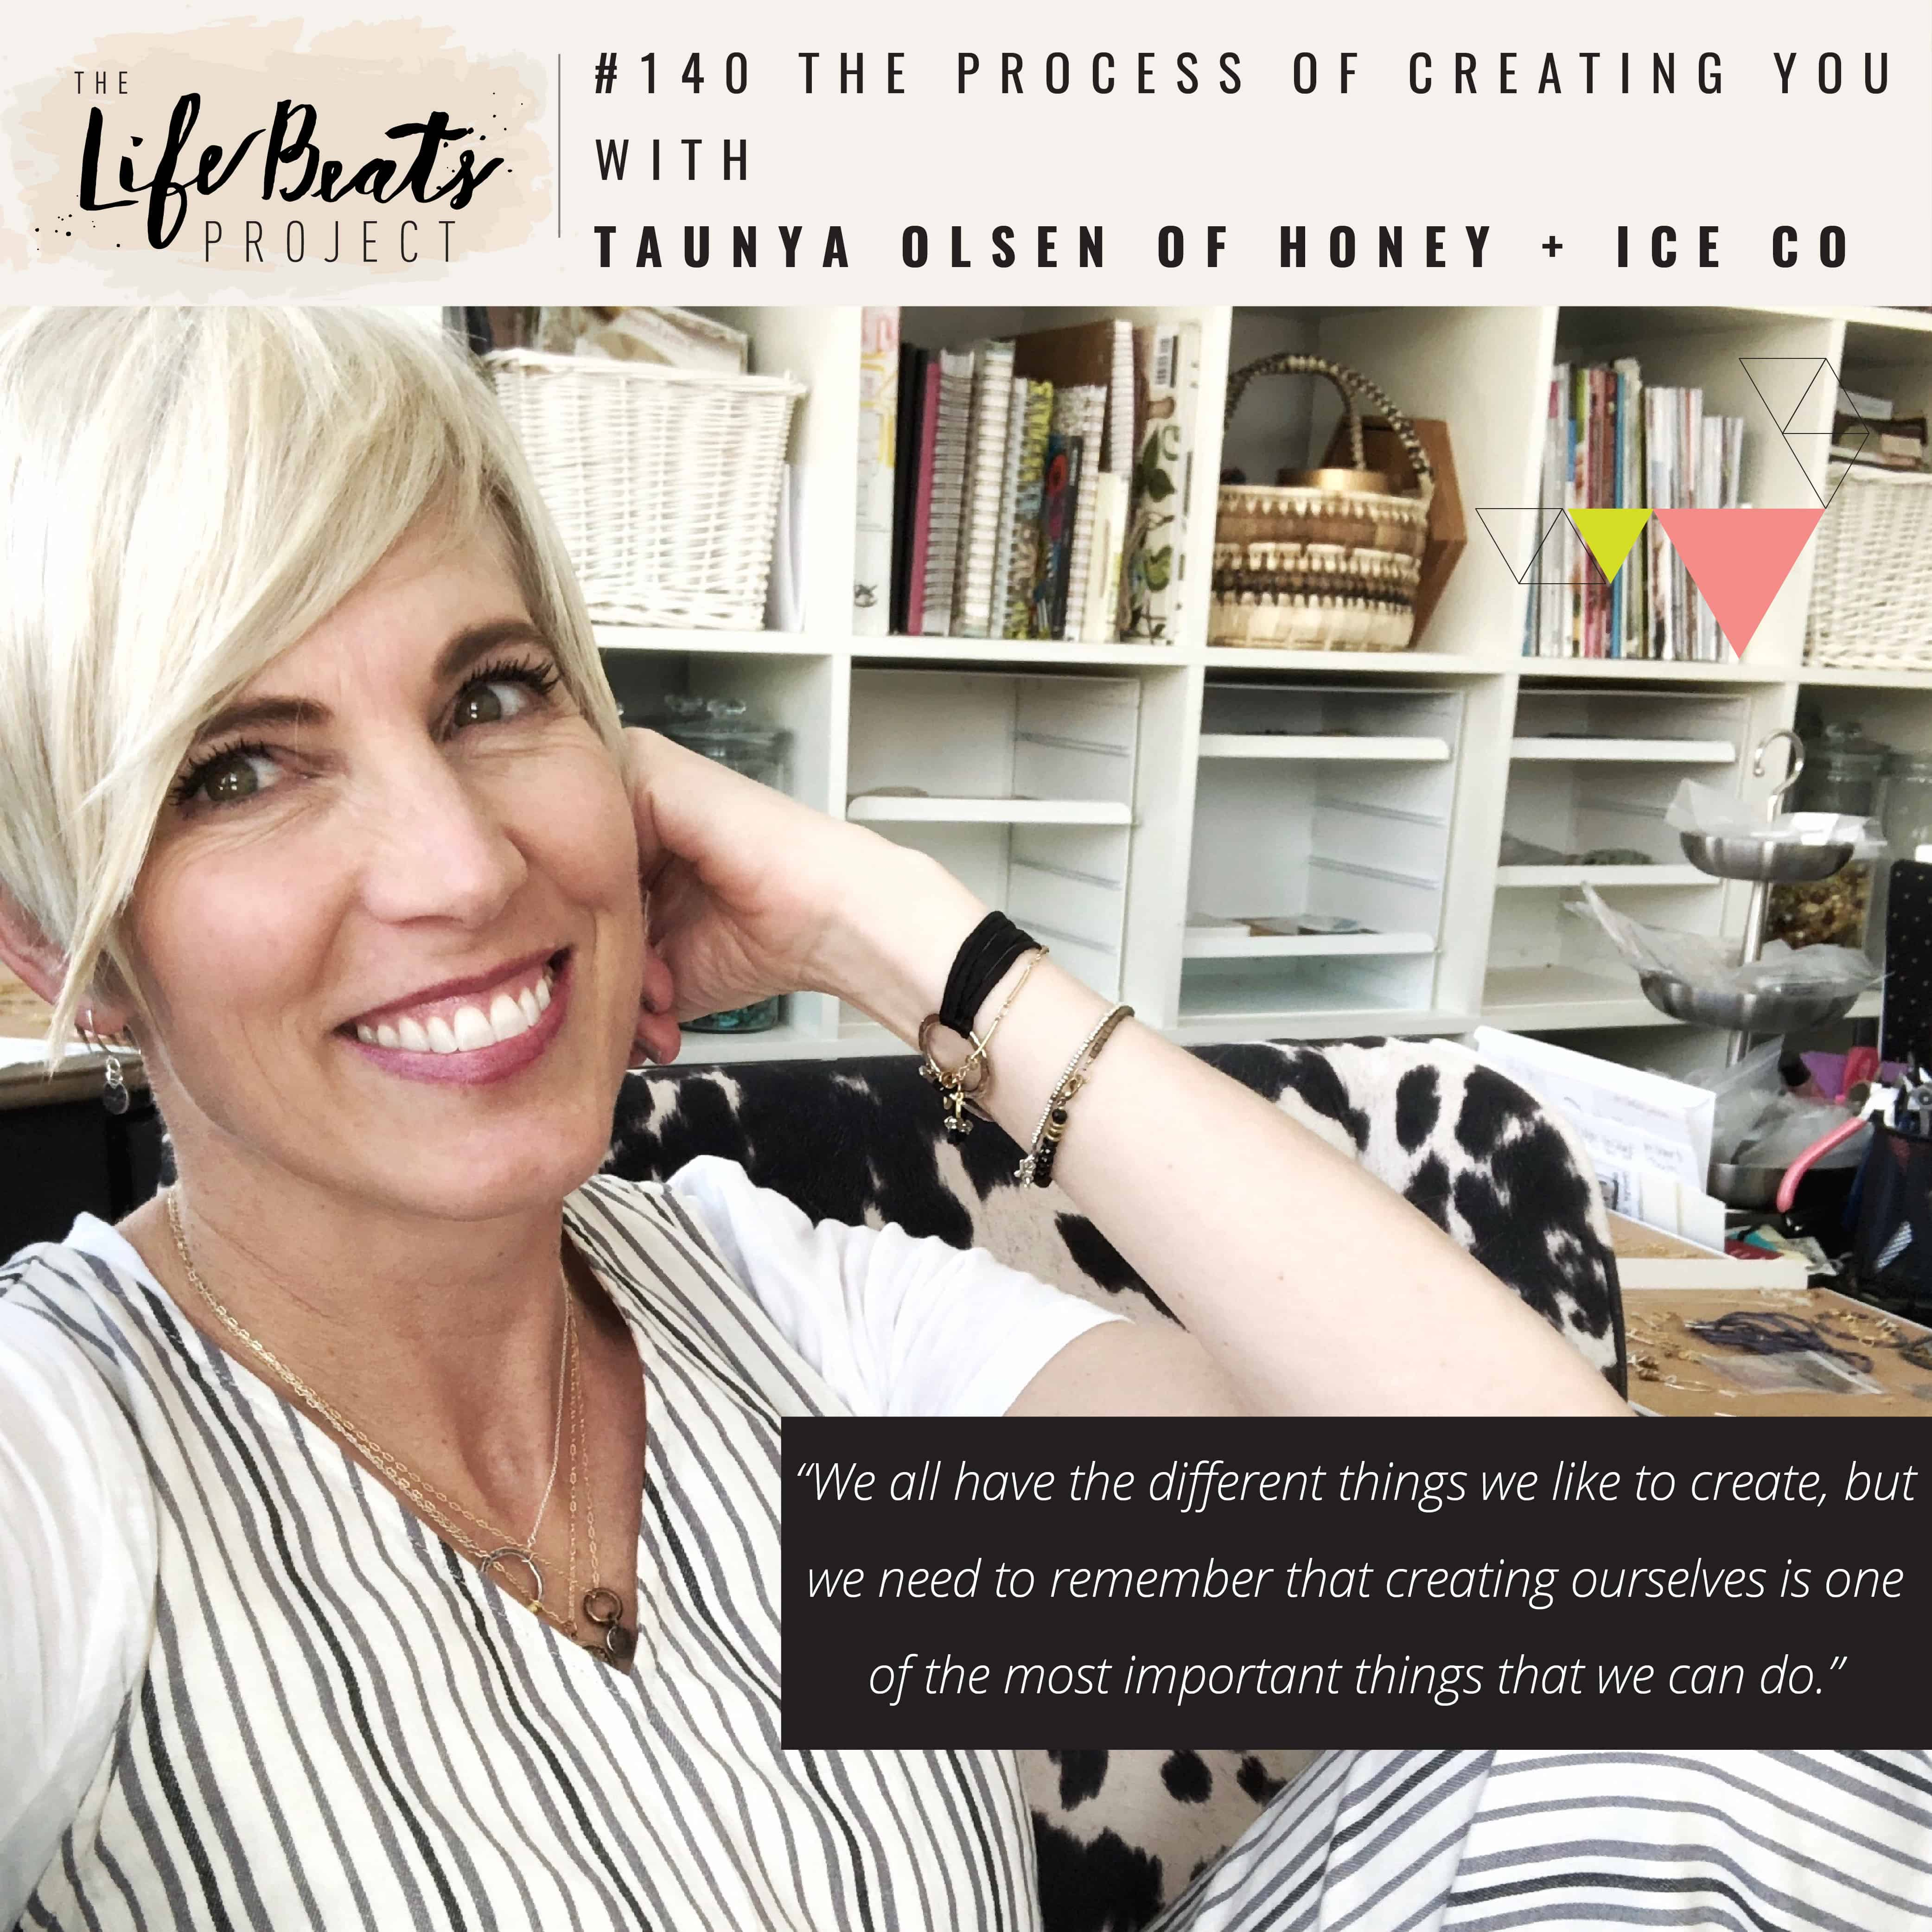 motherhood working mom career inner struggle stay at home mom creating process Uchtdorf yearning create podcast LifeBeats Project depression